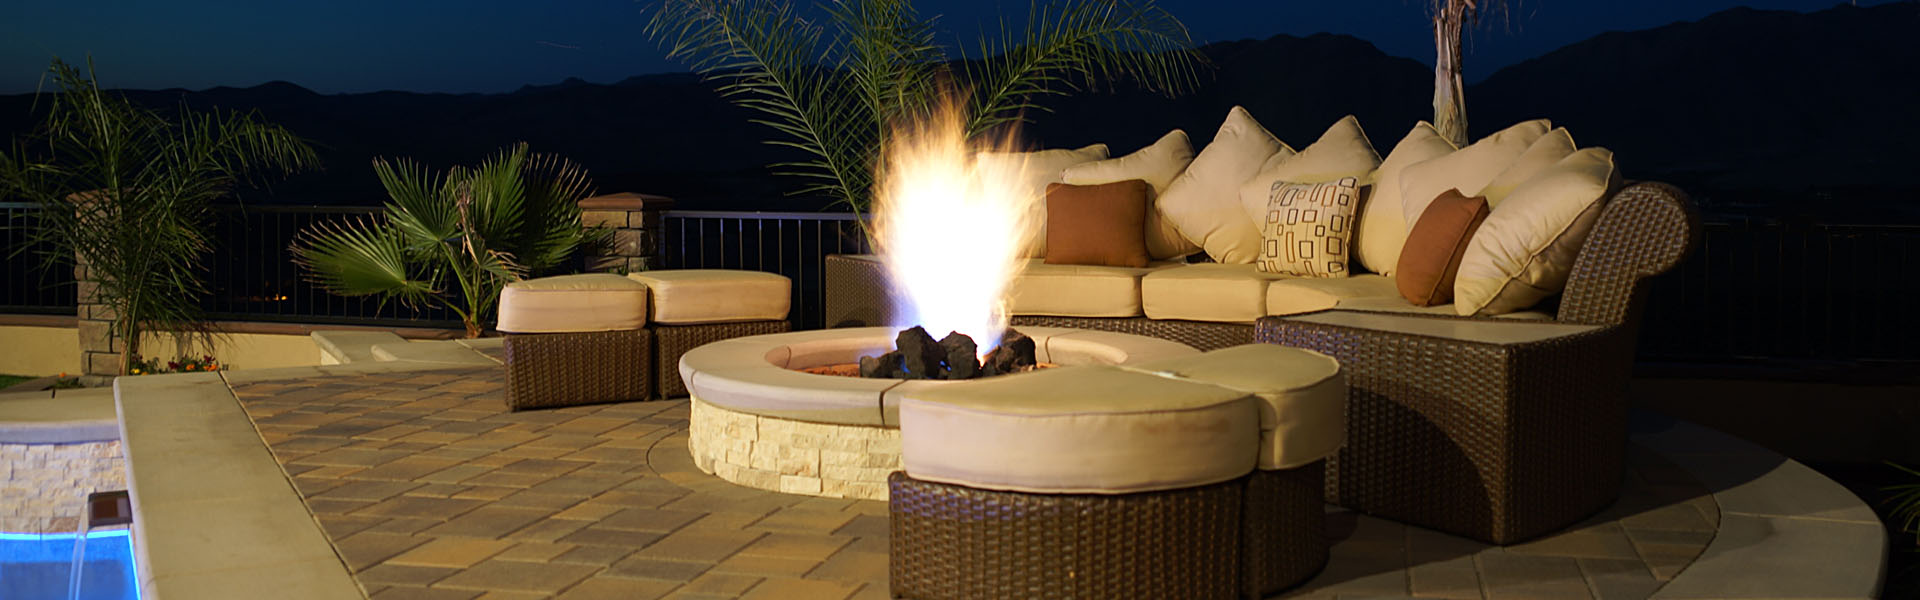 Lounge area with beautiful fire pit by the pool at night.